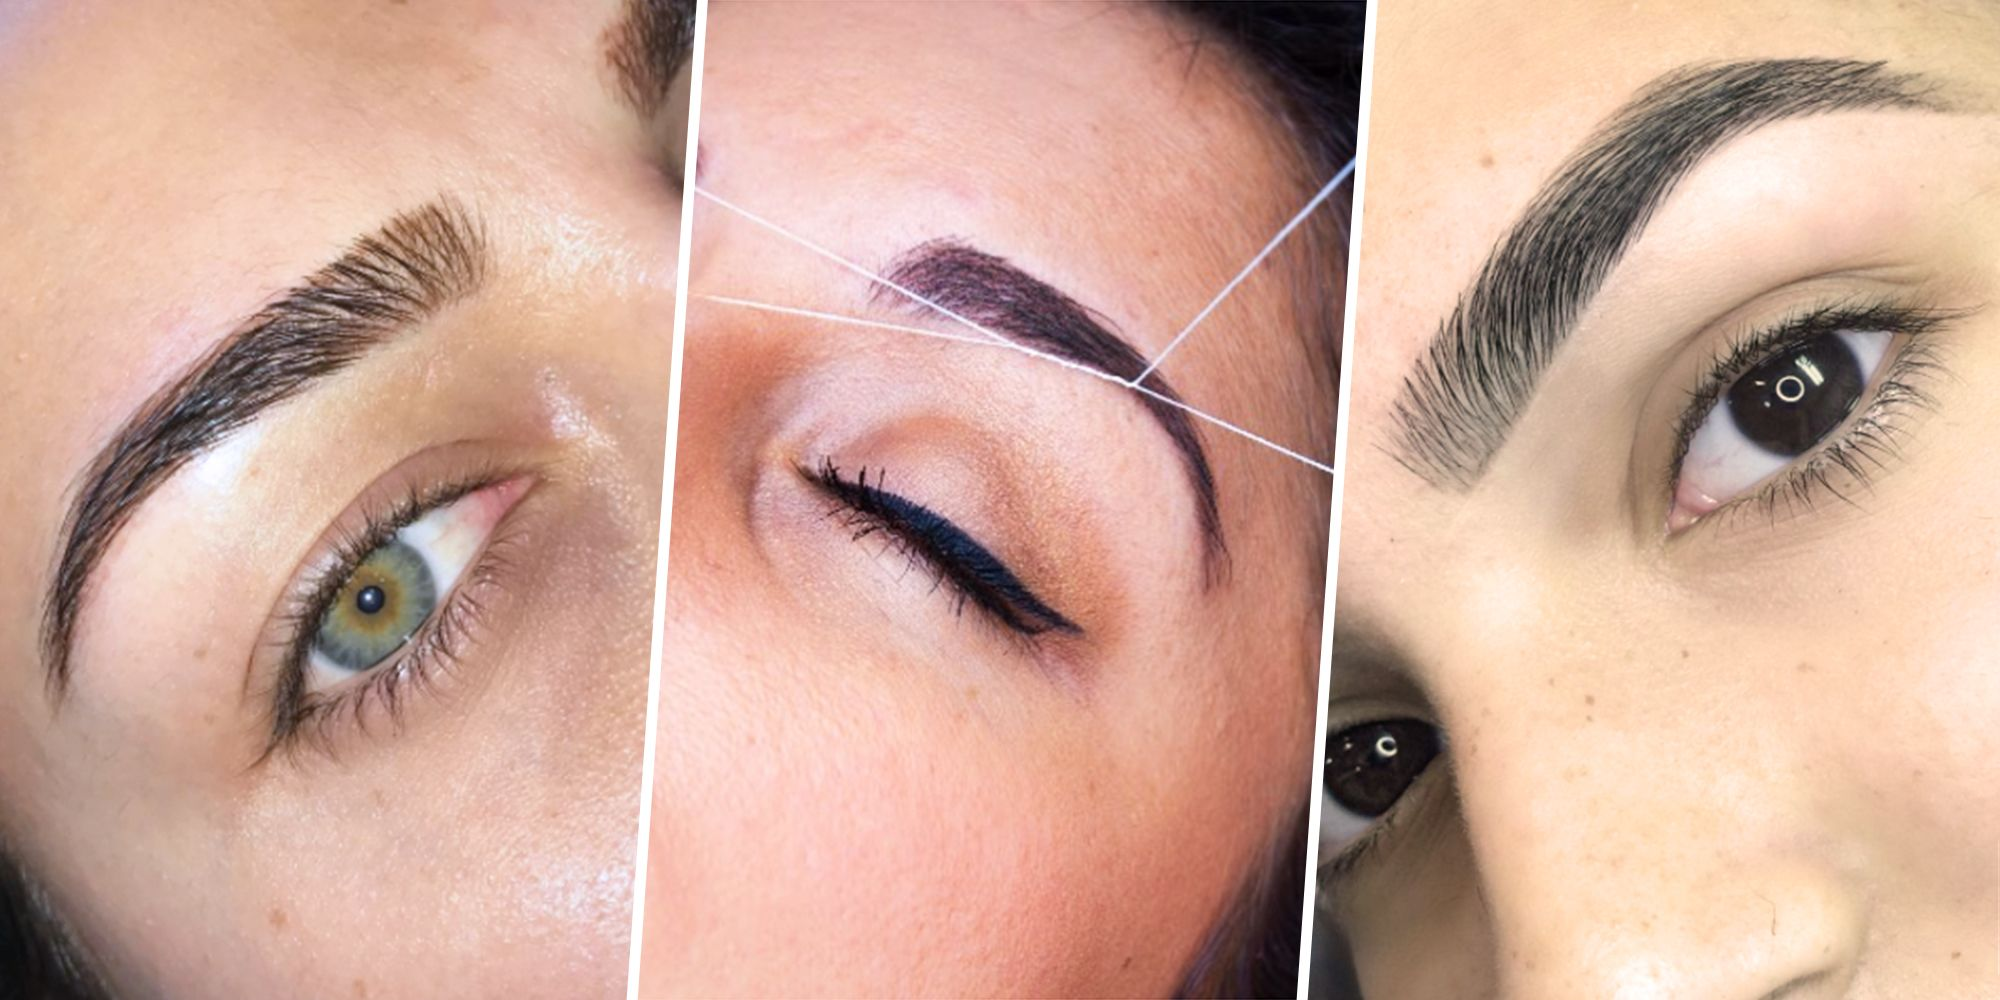 What Eyebrow Threading Feels Like - Should You Thread Your Eyebrows